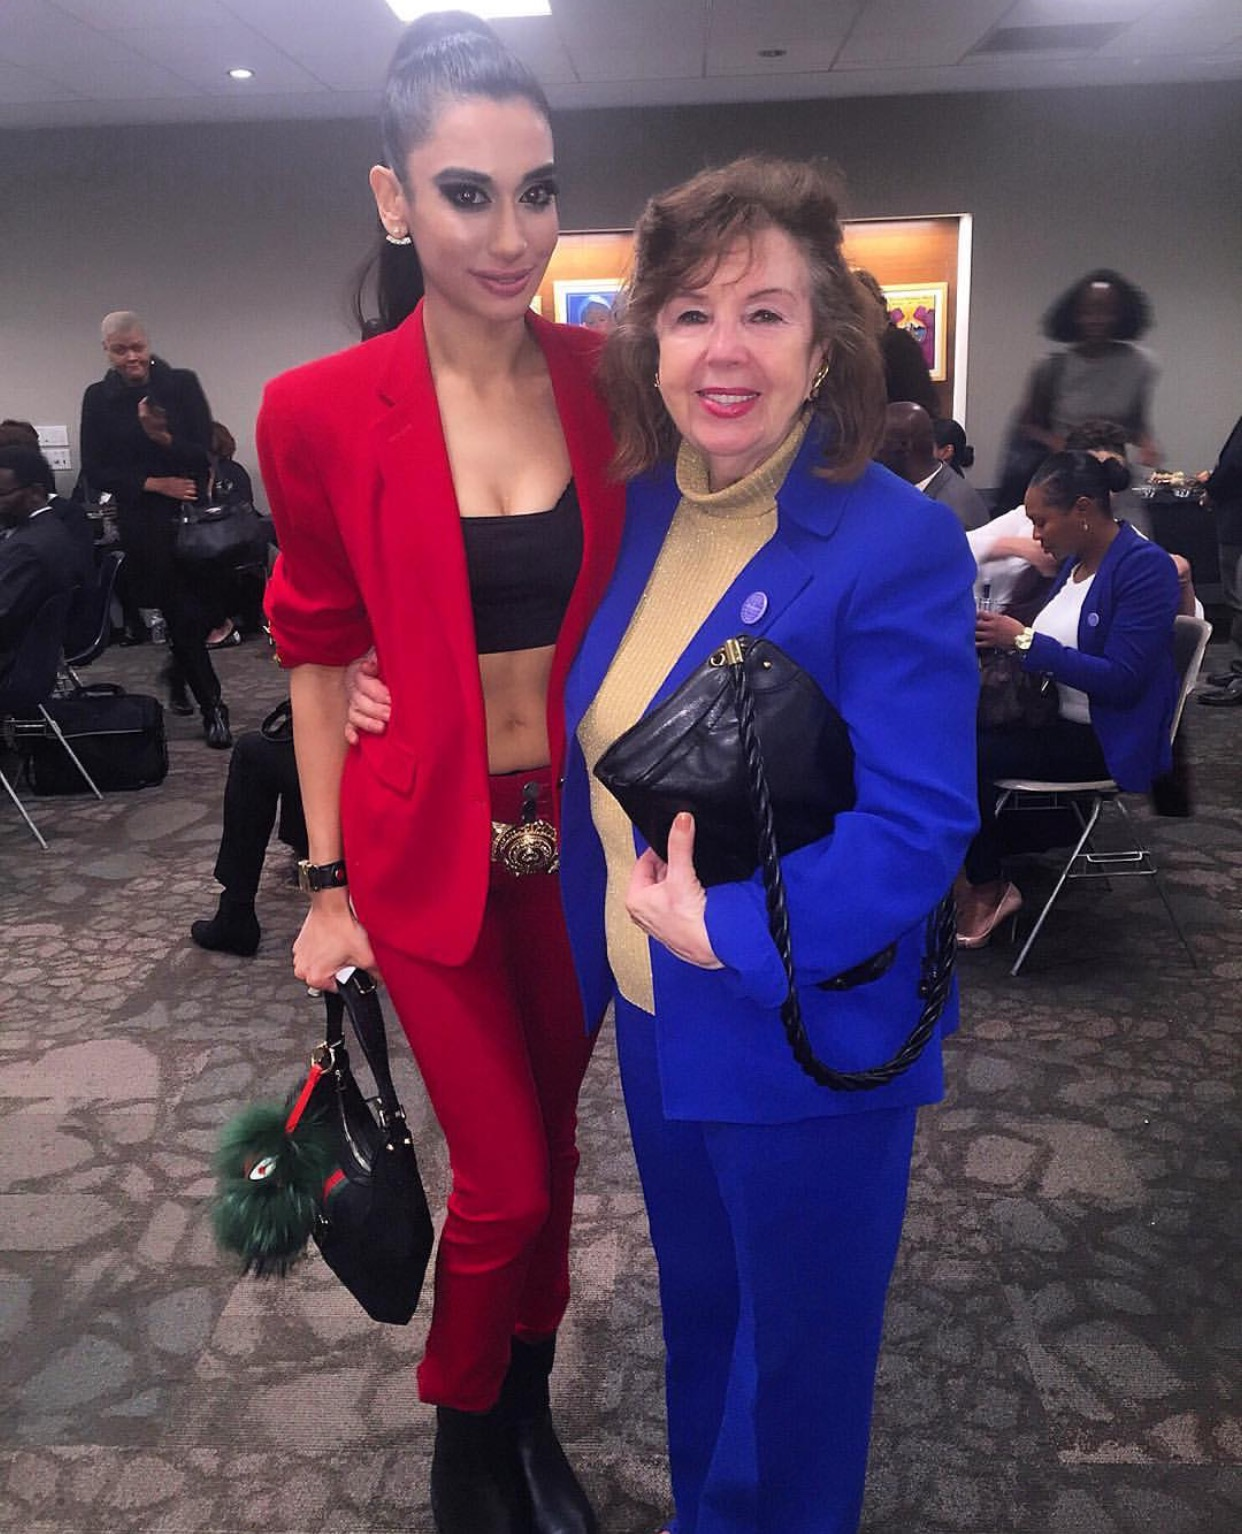 KEEPING IT CUTE AT THE UNITED NATIONS! In our American flag colors pictured with a former chapter President at the National Council Of Women Of The United States 2016 Friends & Family Reception at the United Nations! As NCWUS Ambassador At The United Nations, I am HONORED to serve amongst so many amazing individuals making history for those in need! 😇 STYLE NOTES: Suit by RALPH LAUREN; bag, runway baroque belt and embossed leather boots by GUCCI; my beauty look brought to you exclusively by Giorgio Armani Beauty!